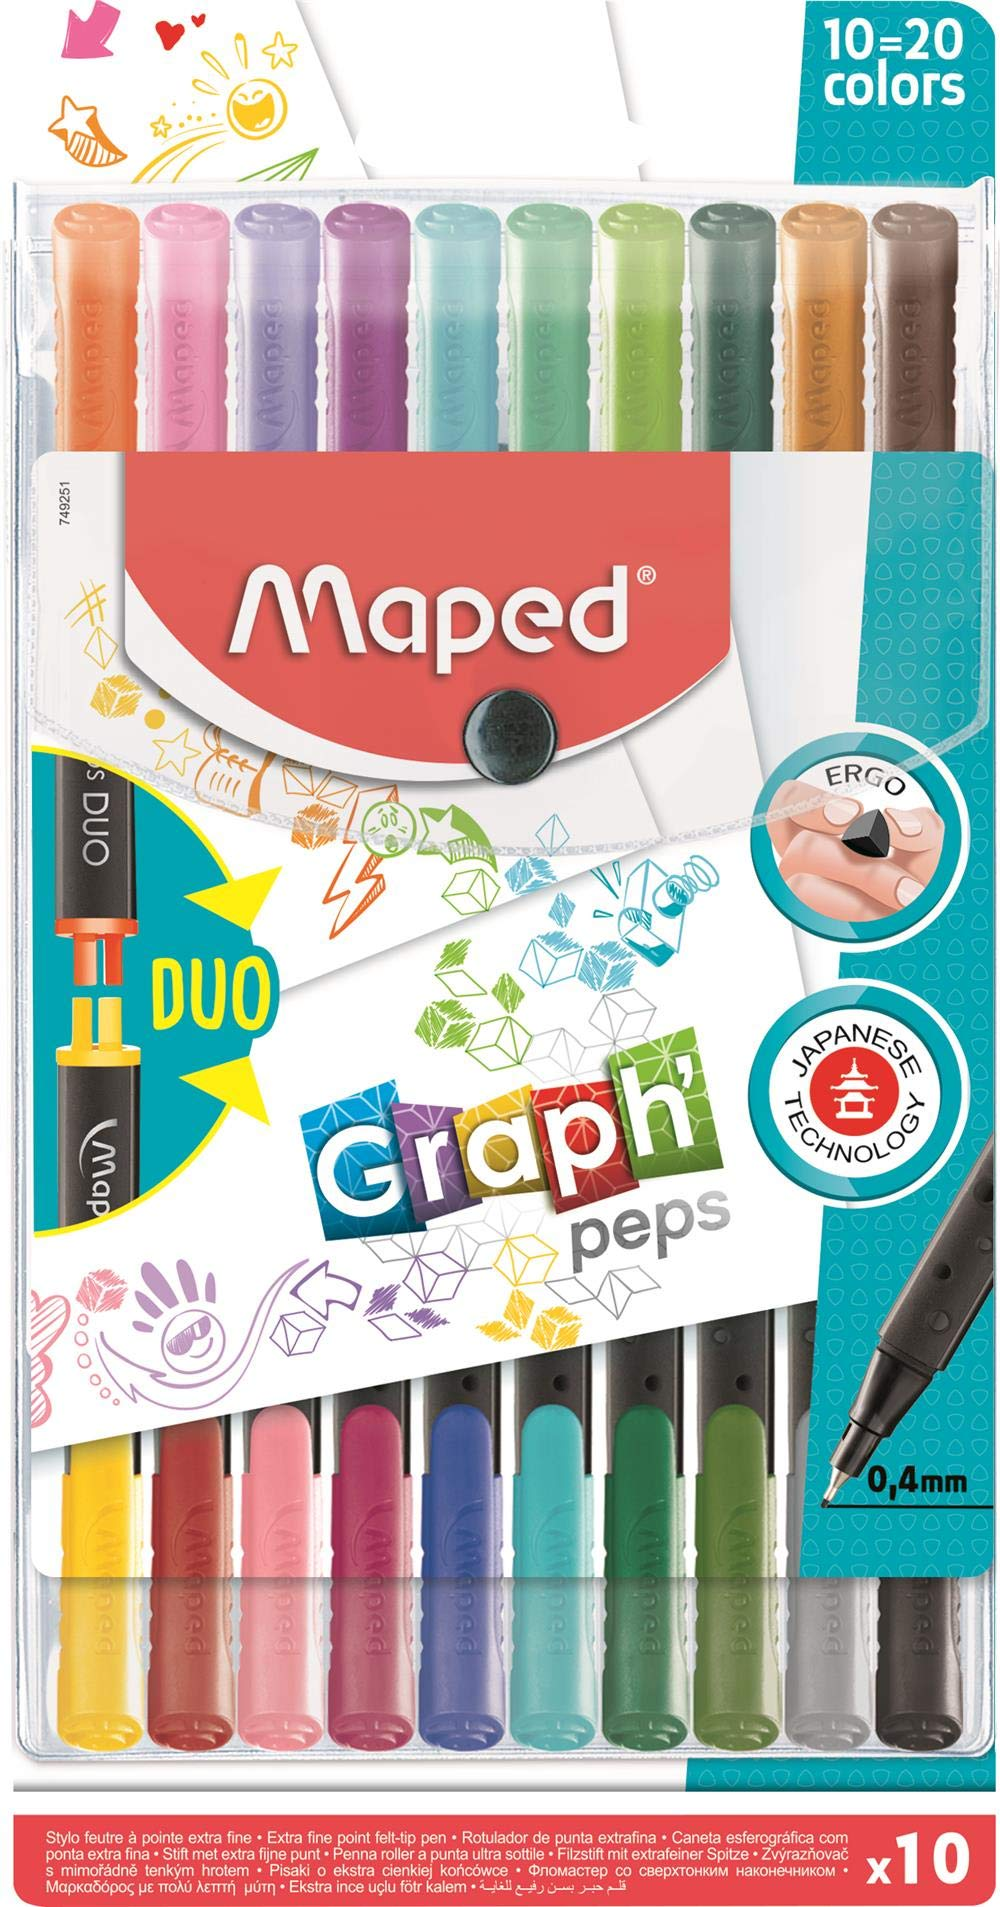 Maped Graph'Peps DUO Connect 0.4mm Fine Felt Tipped Pens, Pack of 20 (749251)